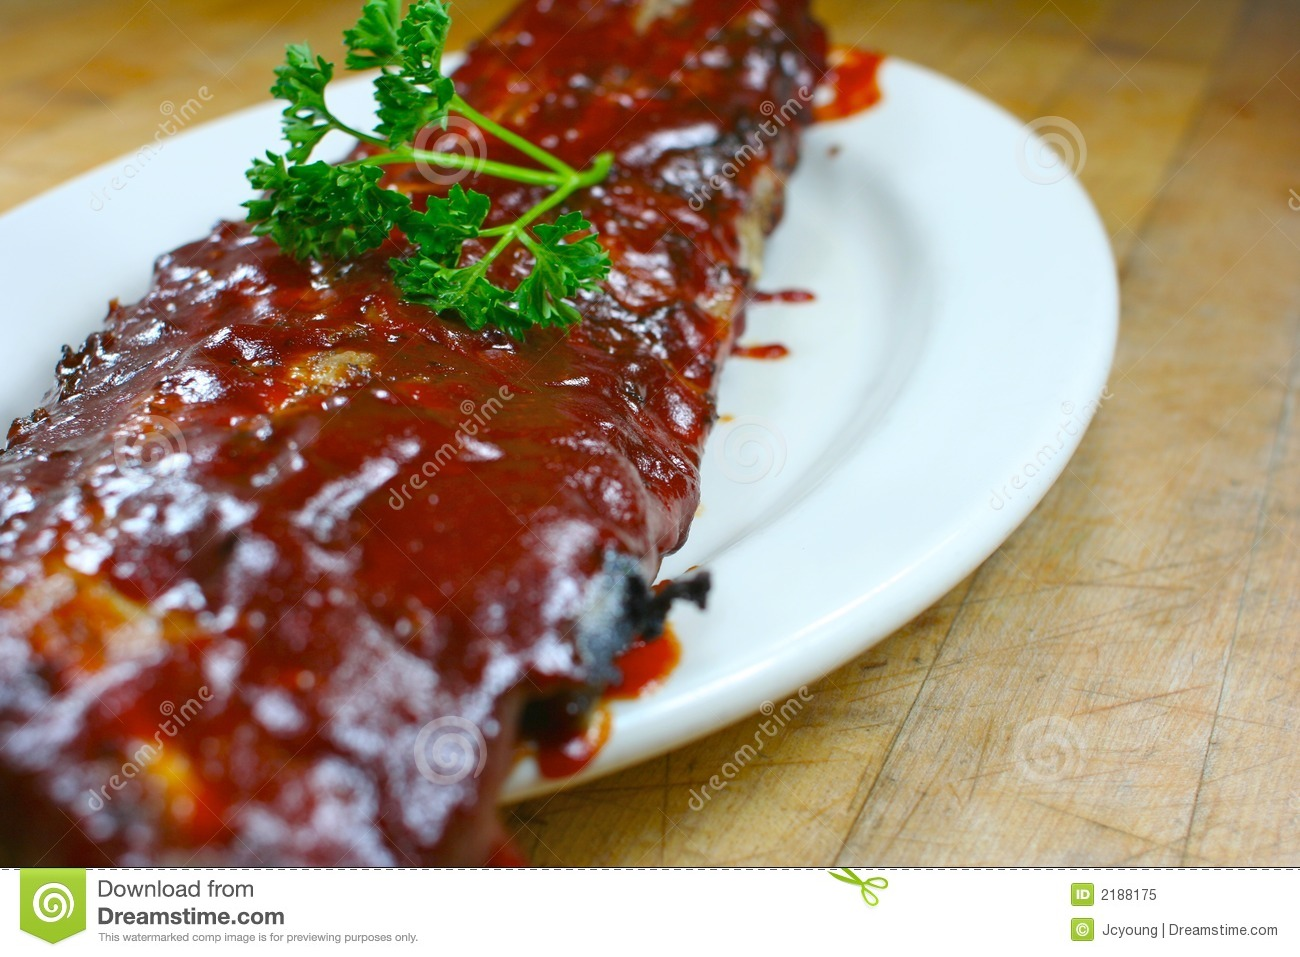 Delicious pork ribs smothered